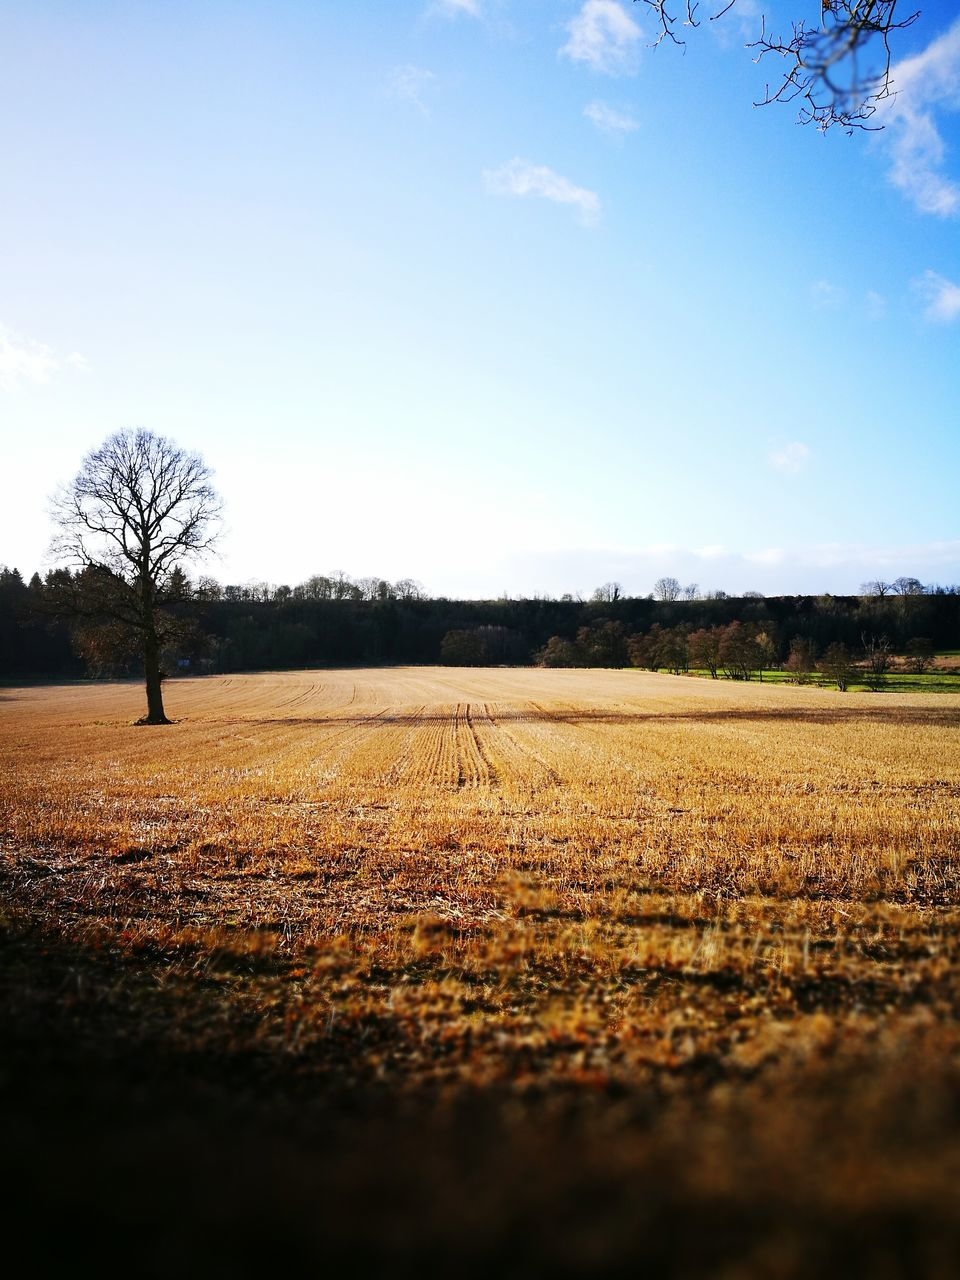 field, landscape, agriculture, tree, beauty in nature, tranquil scene, tranquility, nature, sky, day, plough, outdoors, scenics, bare tree, rural scene, no people, lone